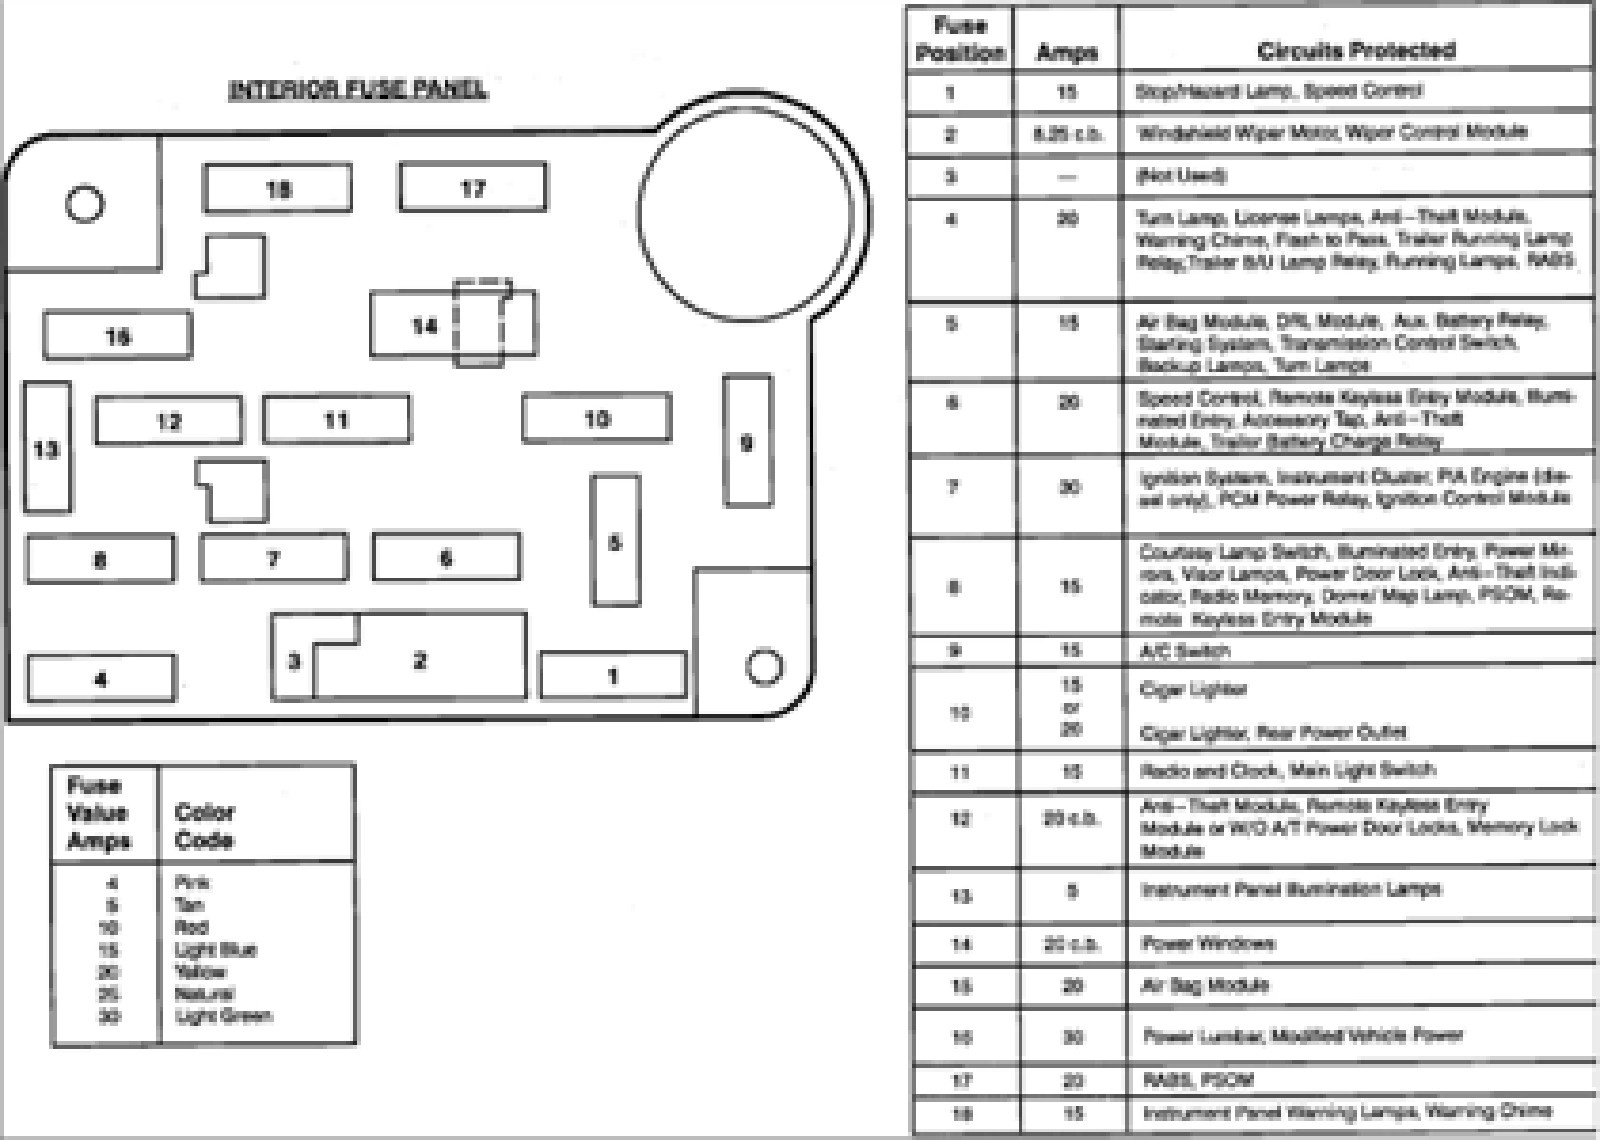 1997 F350 Fuse Panel Diagram Wiring Diagrams Mon